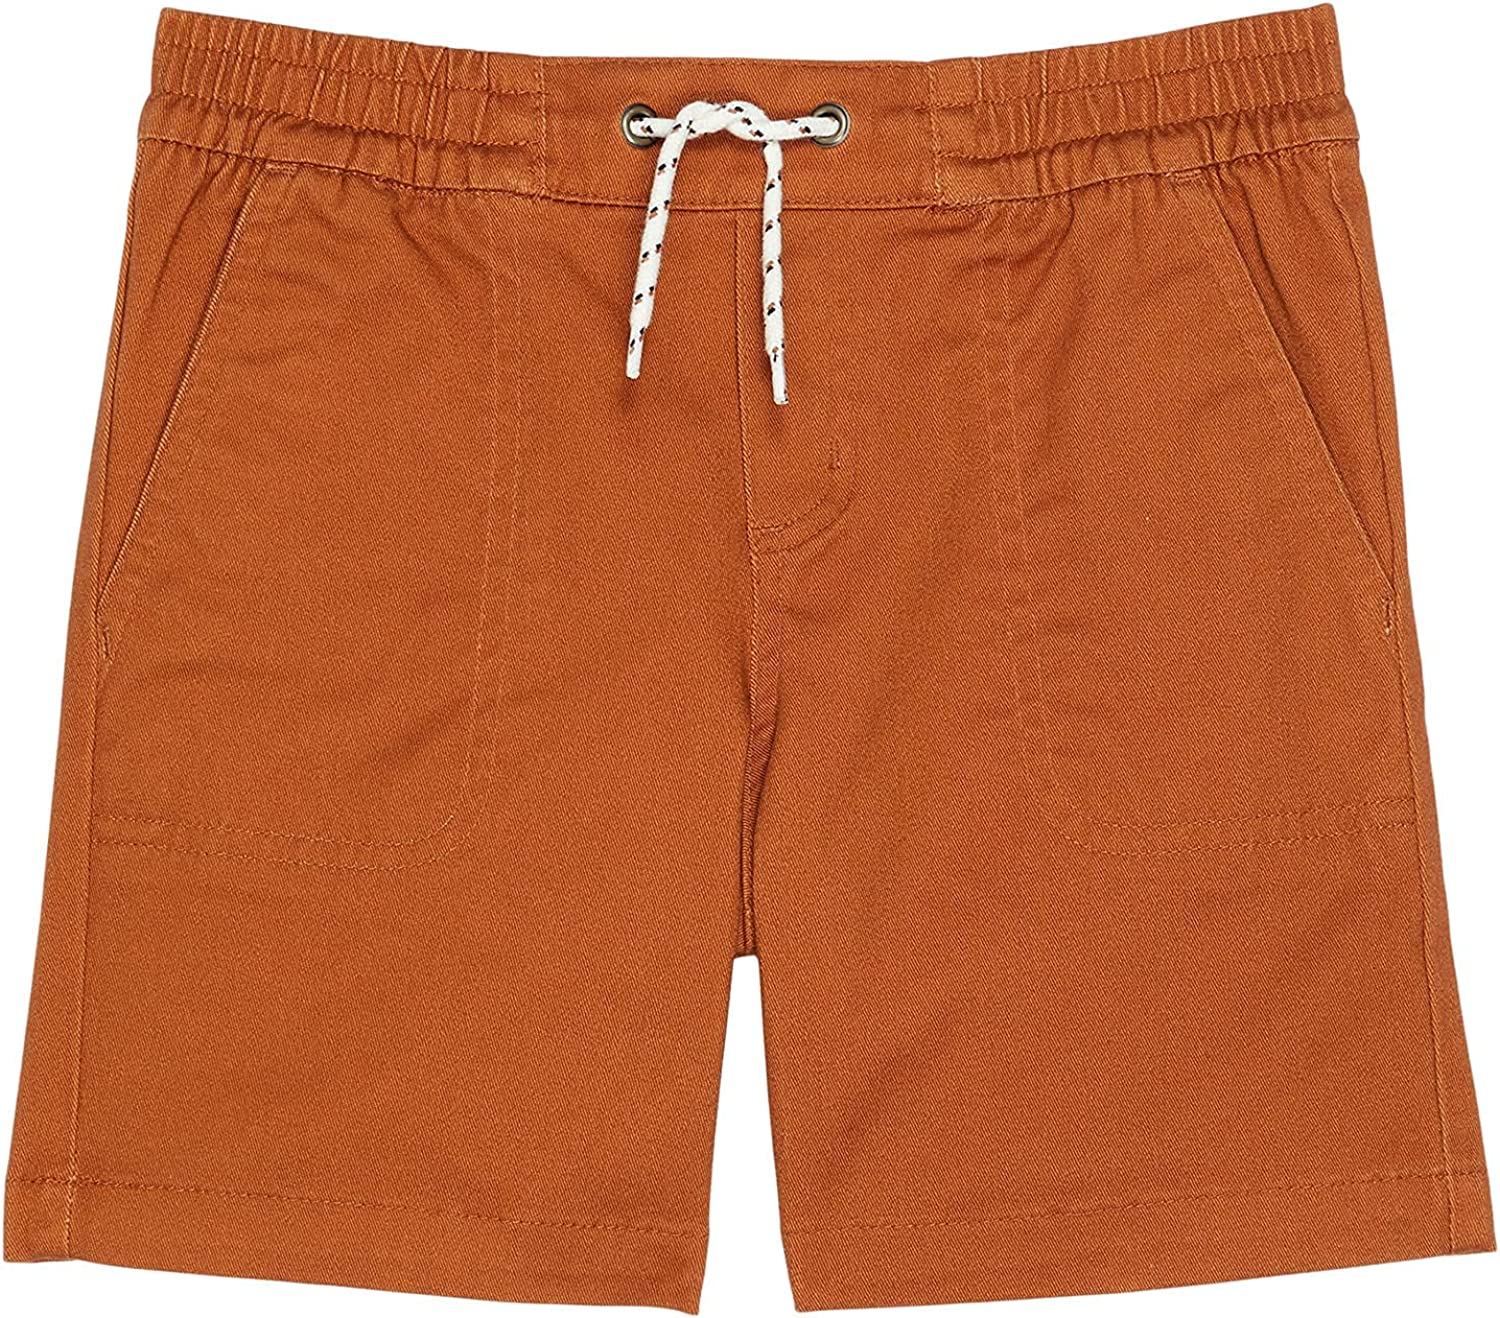 Janie and Jack Boy's Twill Pull-On Shorts (Toddler/Little Kids/Big Kids)